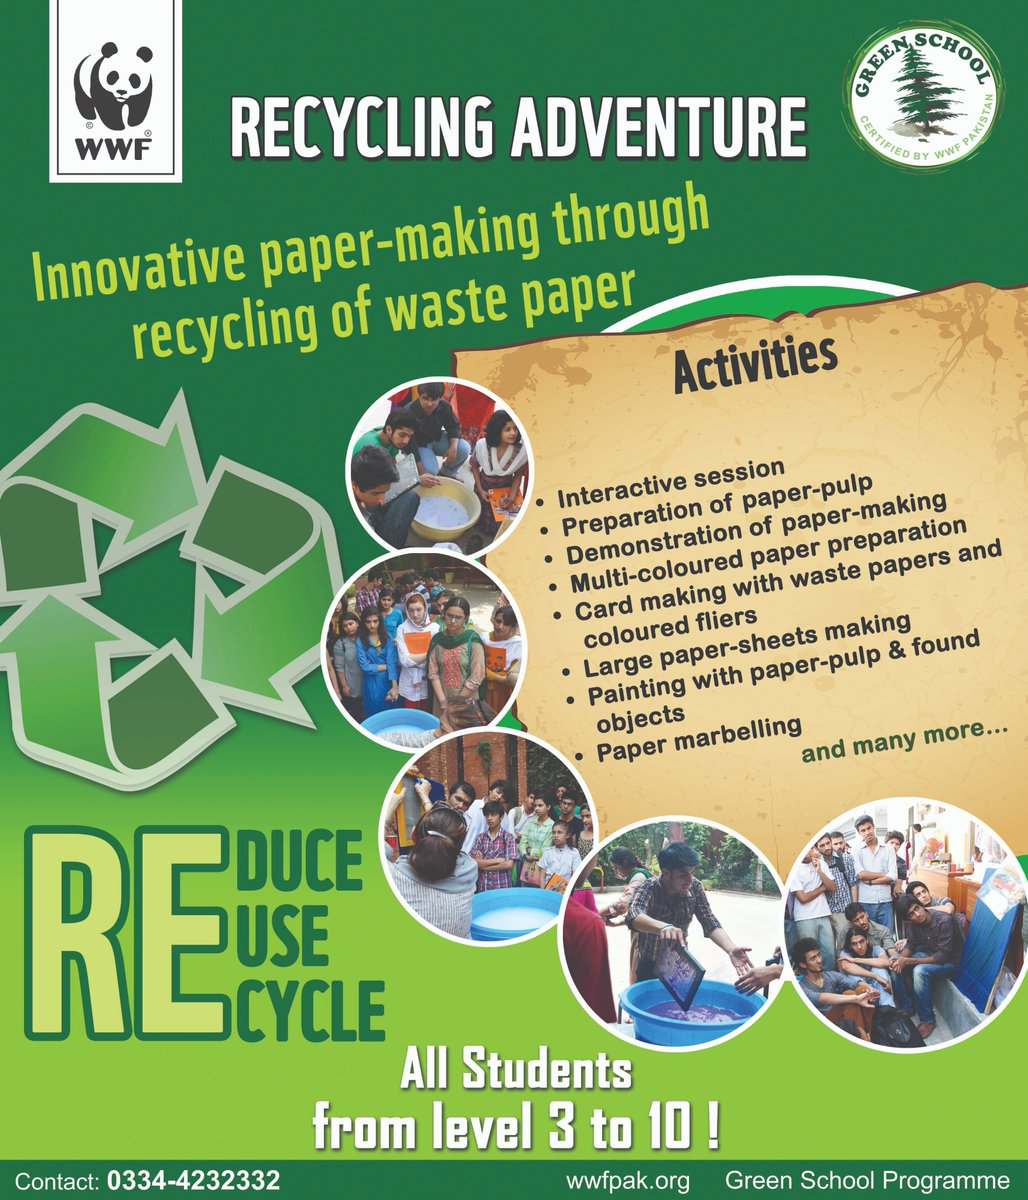 Wwf pakistan on twitter wwfpak invites students from grade 3 to wwfpak invites students from grade 3 to 10 to register for paper making workshop and learn about reducing paper waste through reduce reuse stopboris Choice Image